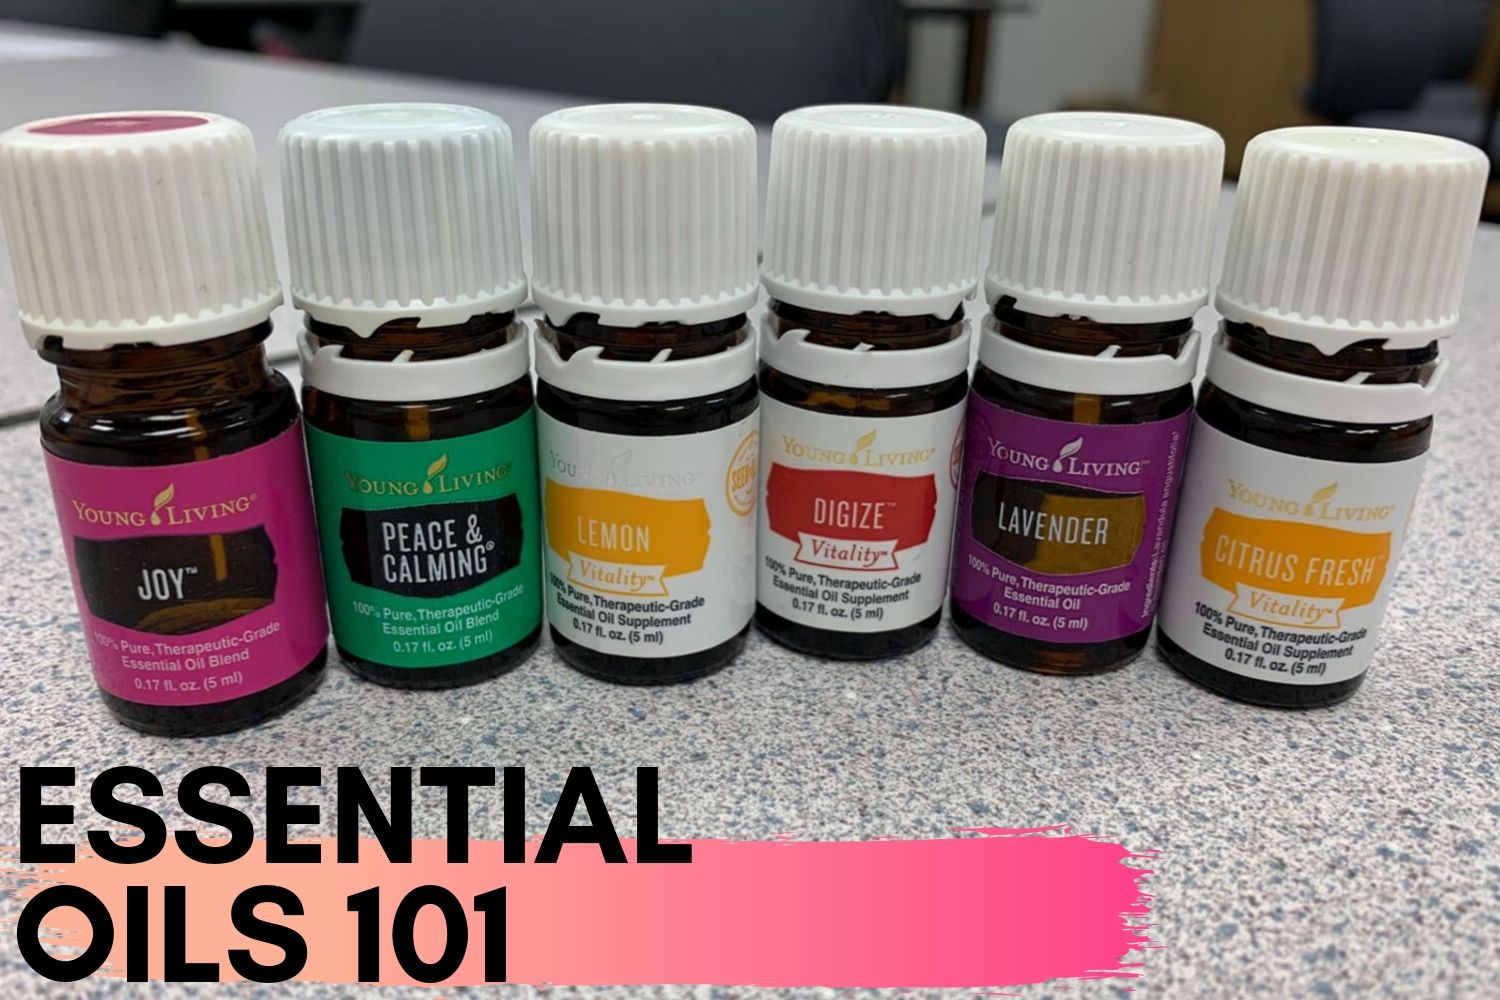 An essential oils class was held at the SCCC industrial tech on Sept. 24. Essential oils enthusiast, Debbie Scroggs, taught the class and brought her own samples for the students to try.